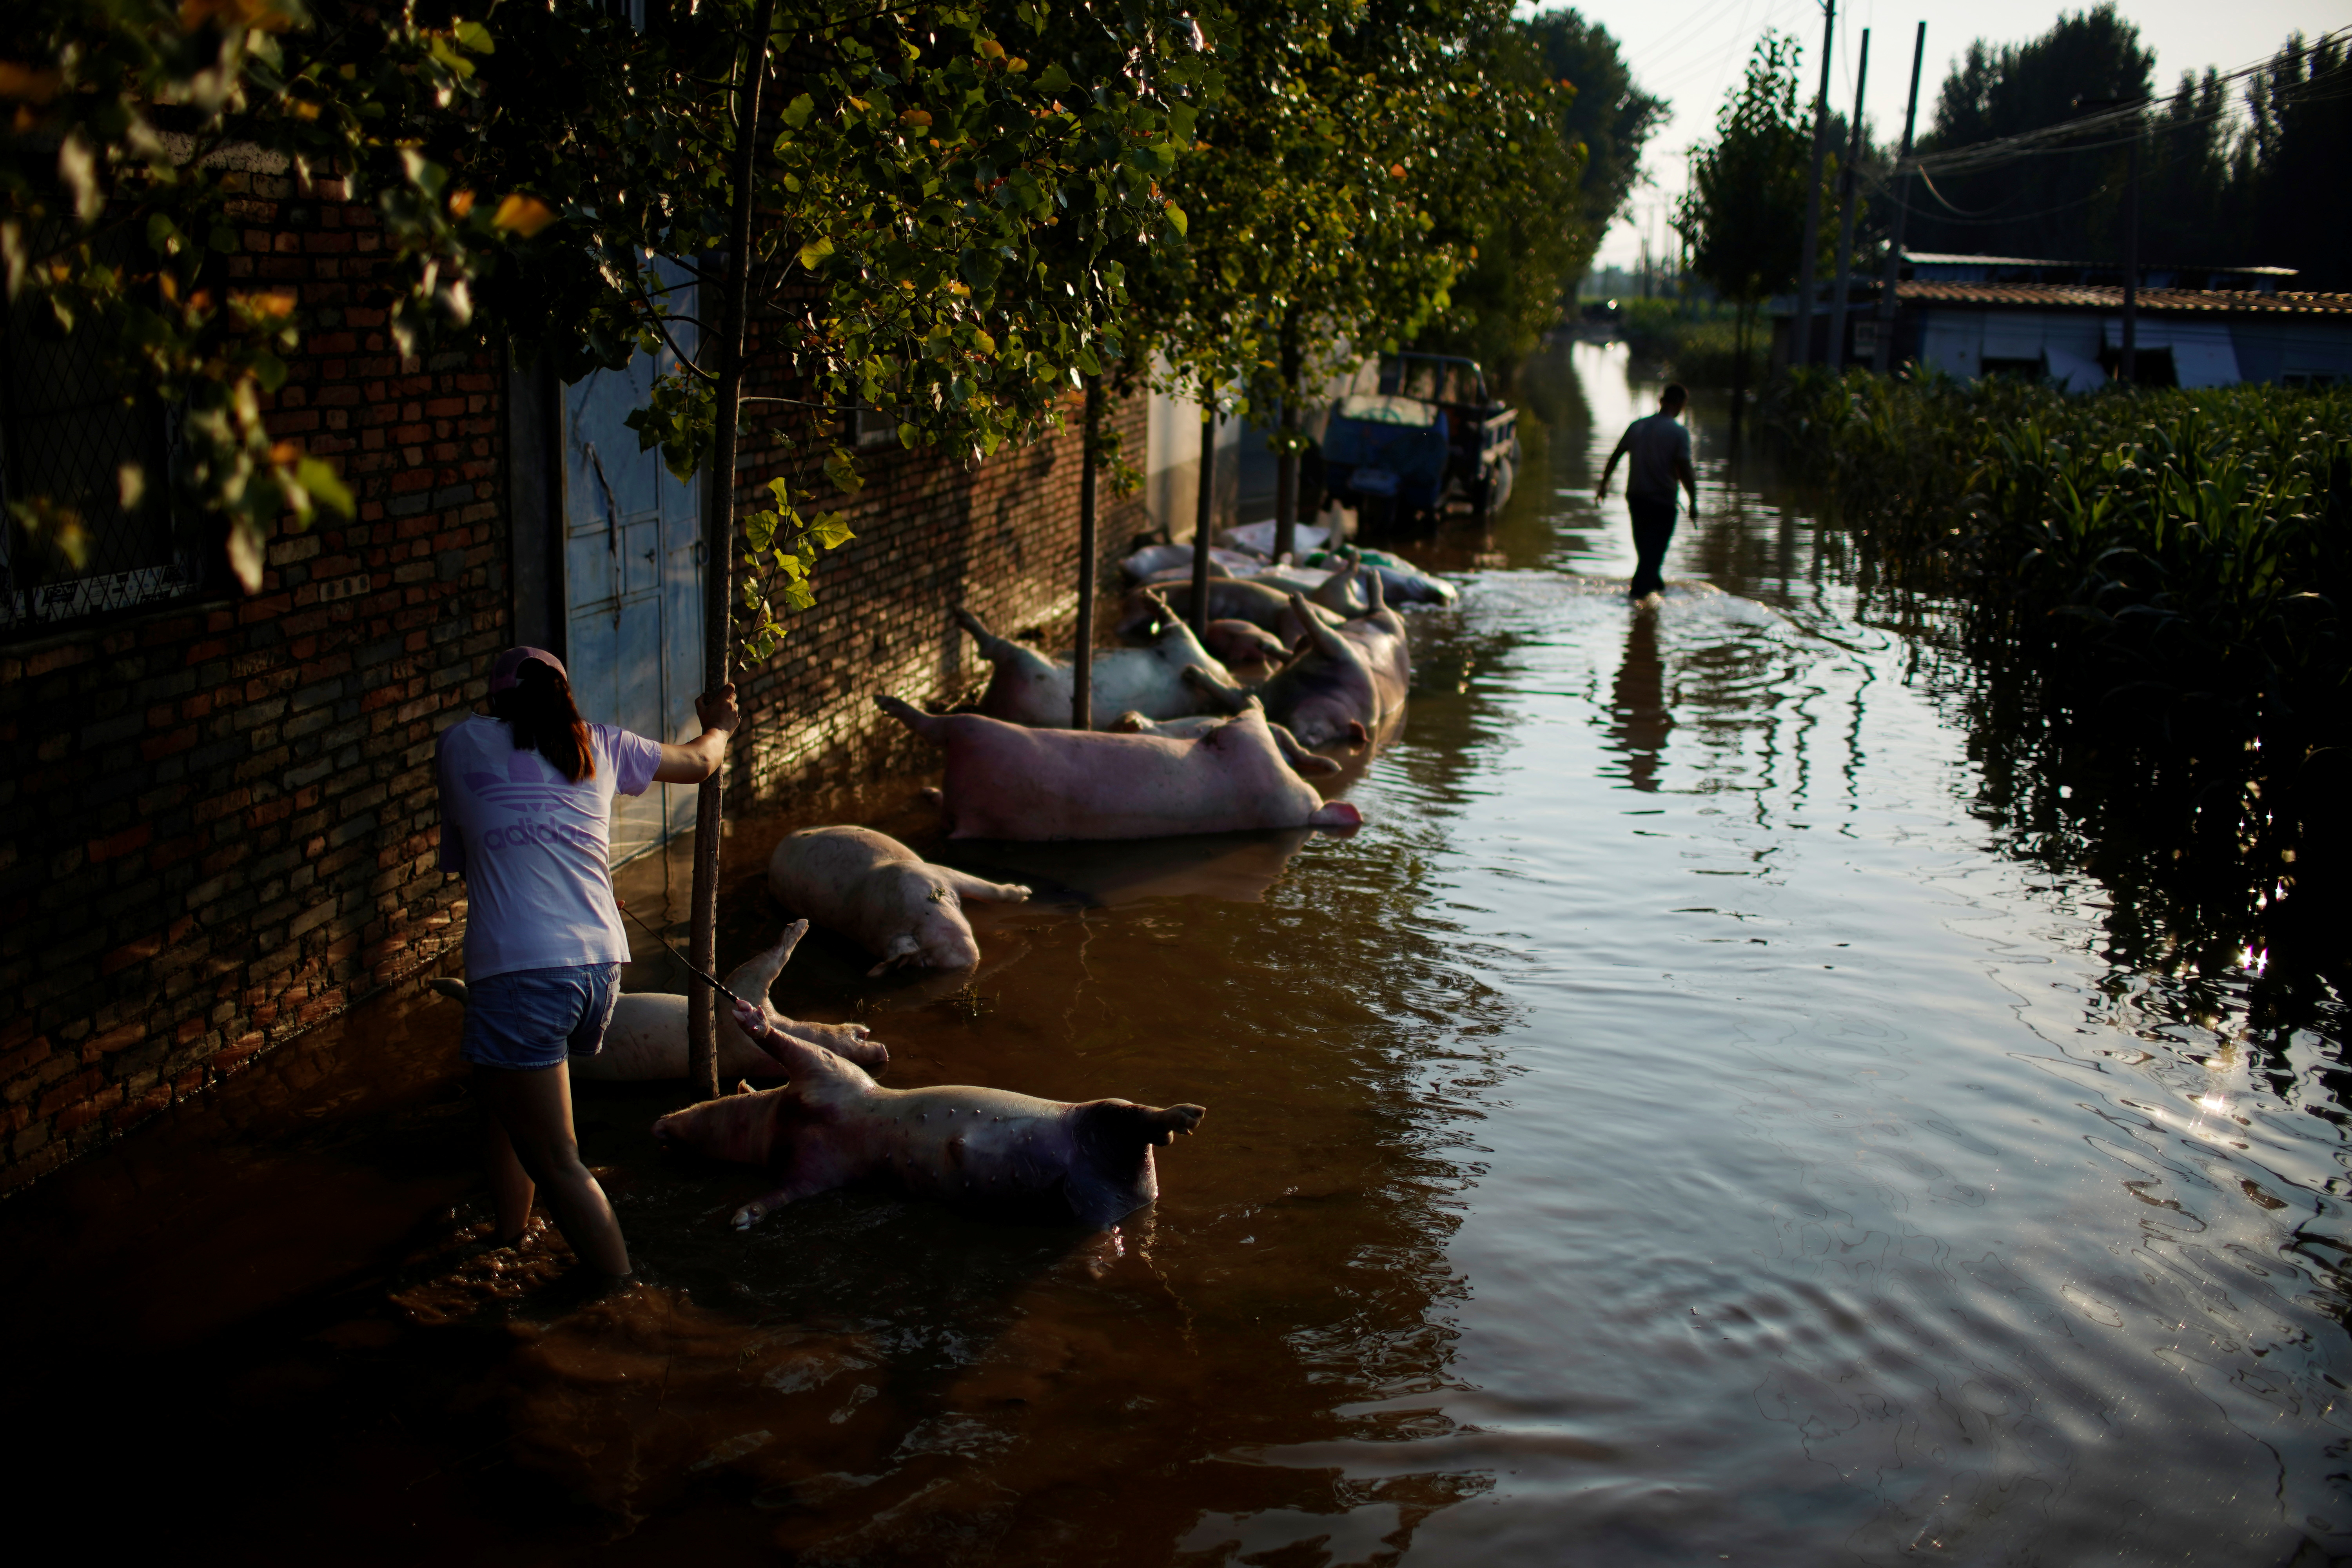 Pig carcasses tied to trees are seen in floodwaters next to a farmland following heavy rainfall in Wangfan village of Xinxiang, Henan province, China July 25, 2021. Picture taken July 25, 2021. REUTERS/Aly Song